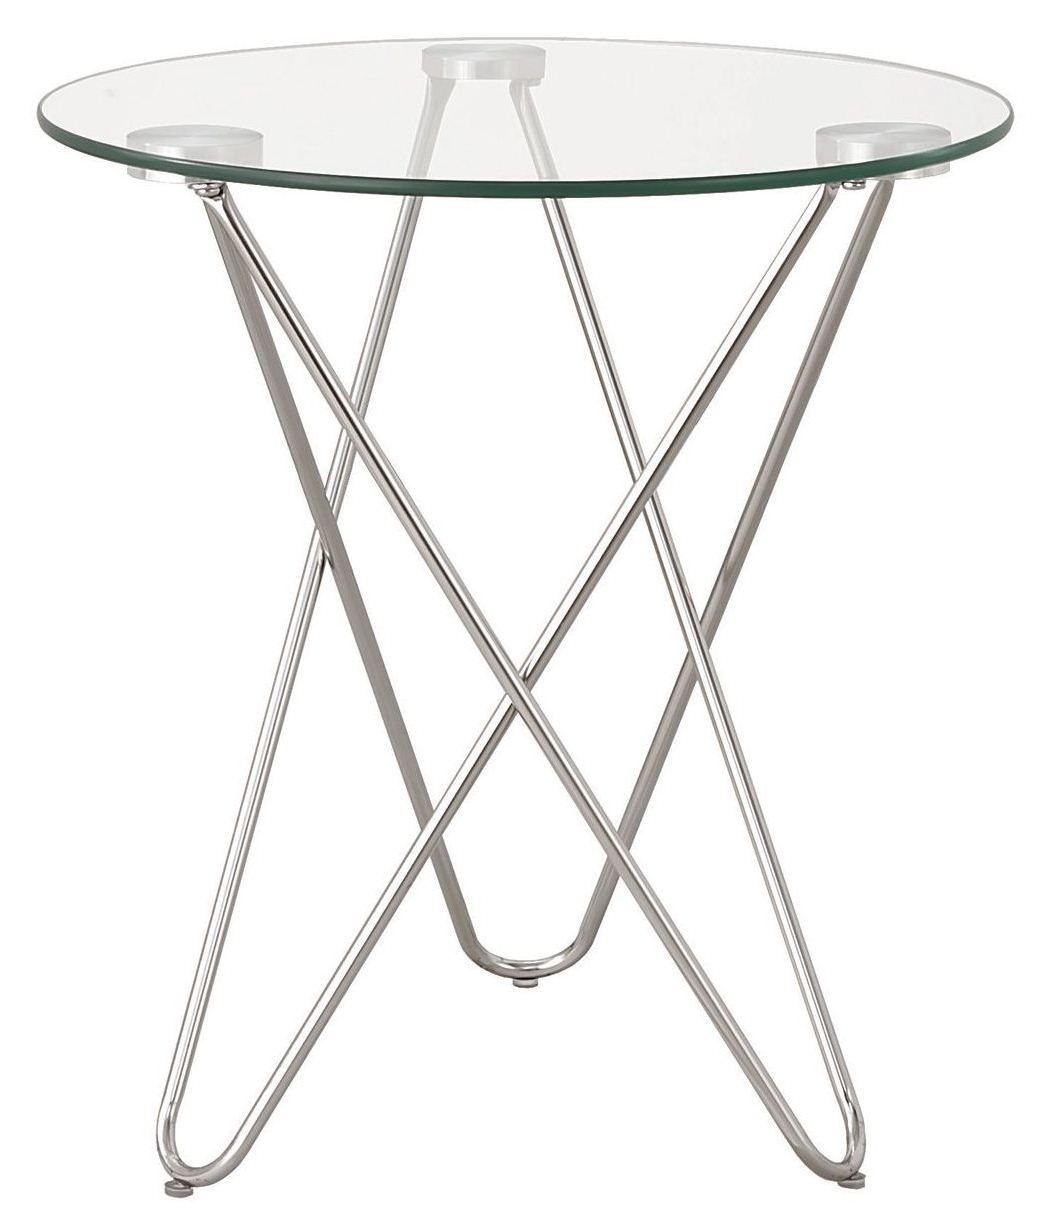 chrome accent table from coaster coleman furniture tables edmonton large nightstands barn style end square concrete fancy tablecloths corner wine rack plain lamp wooden bedside